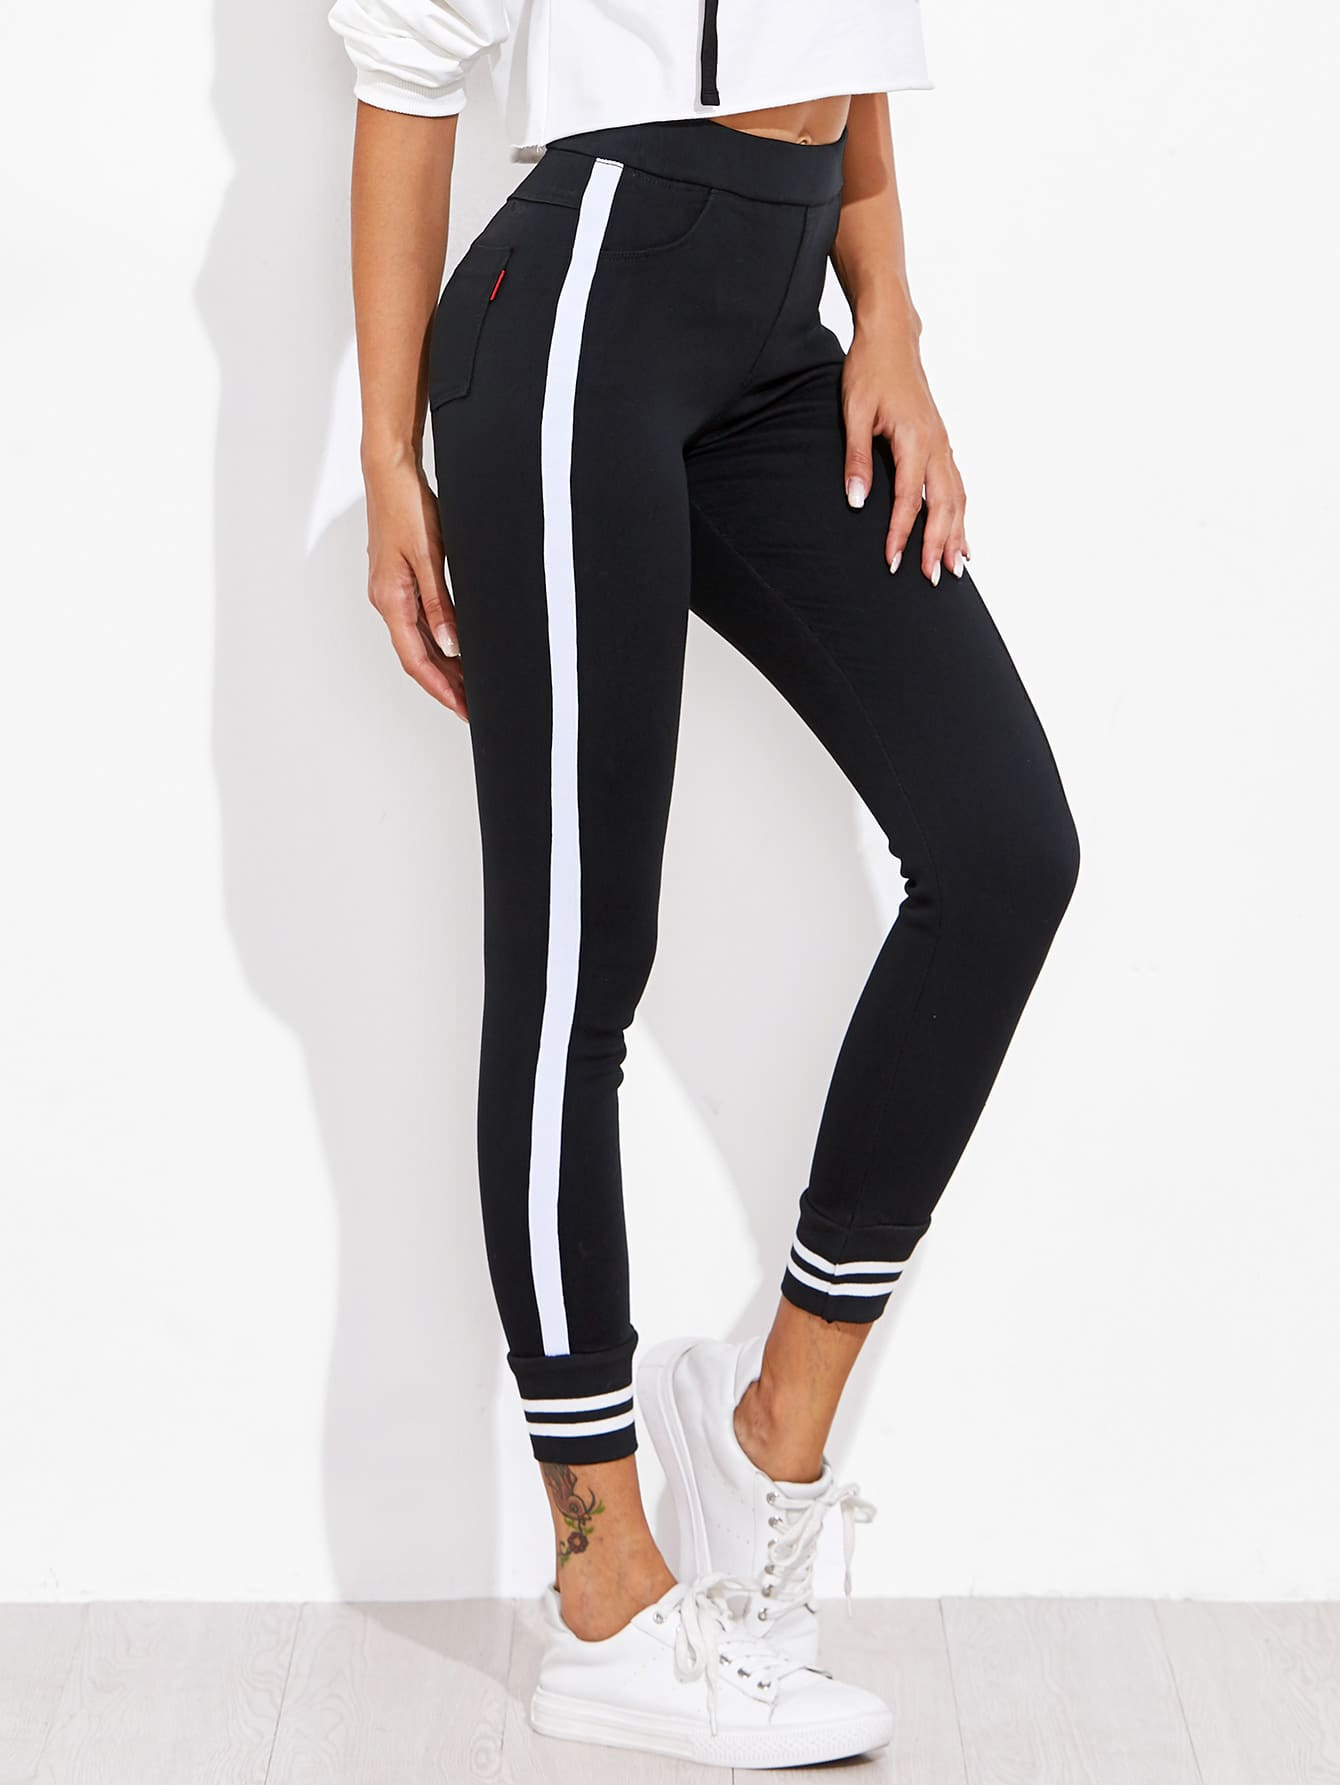 Contrast Striped Sport Leggings Pants